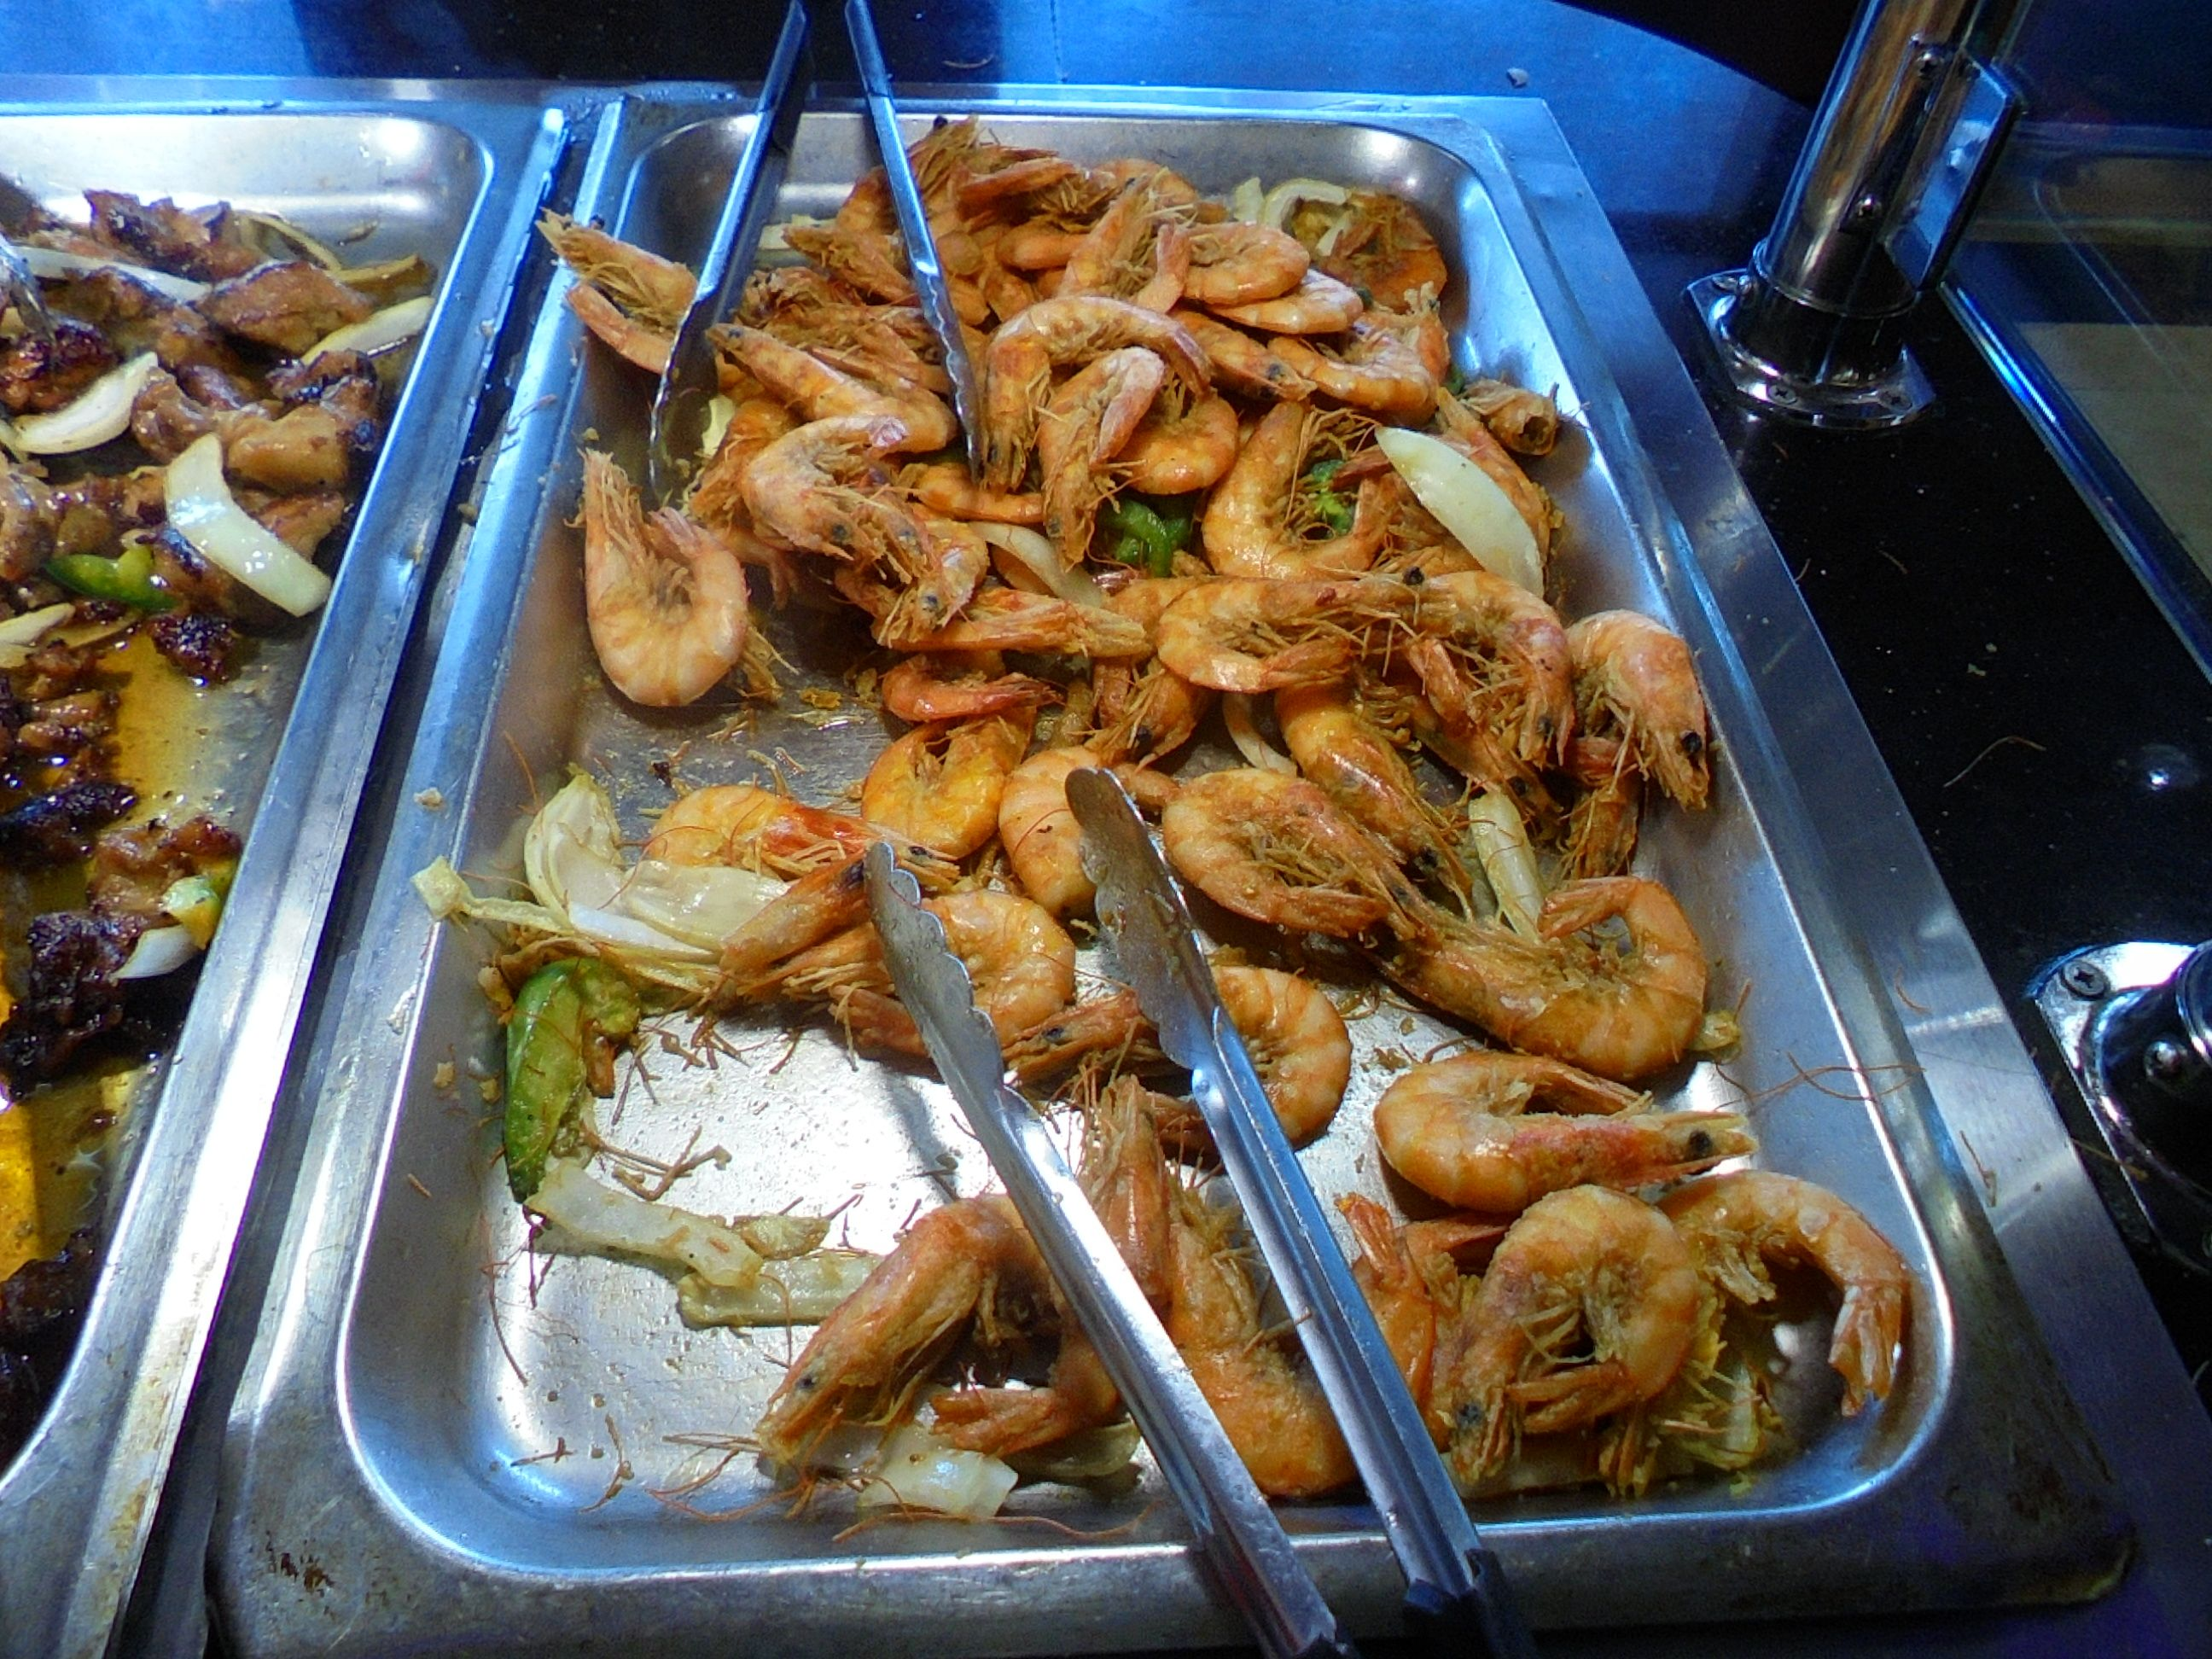 ##ExtraLarge #Shrimp with #seasoning & #Shrimps #have #head #on